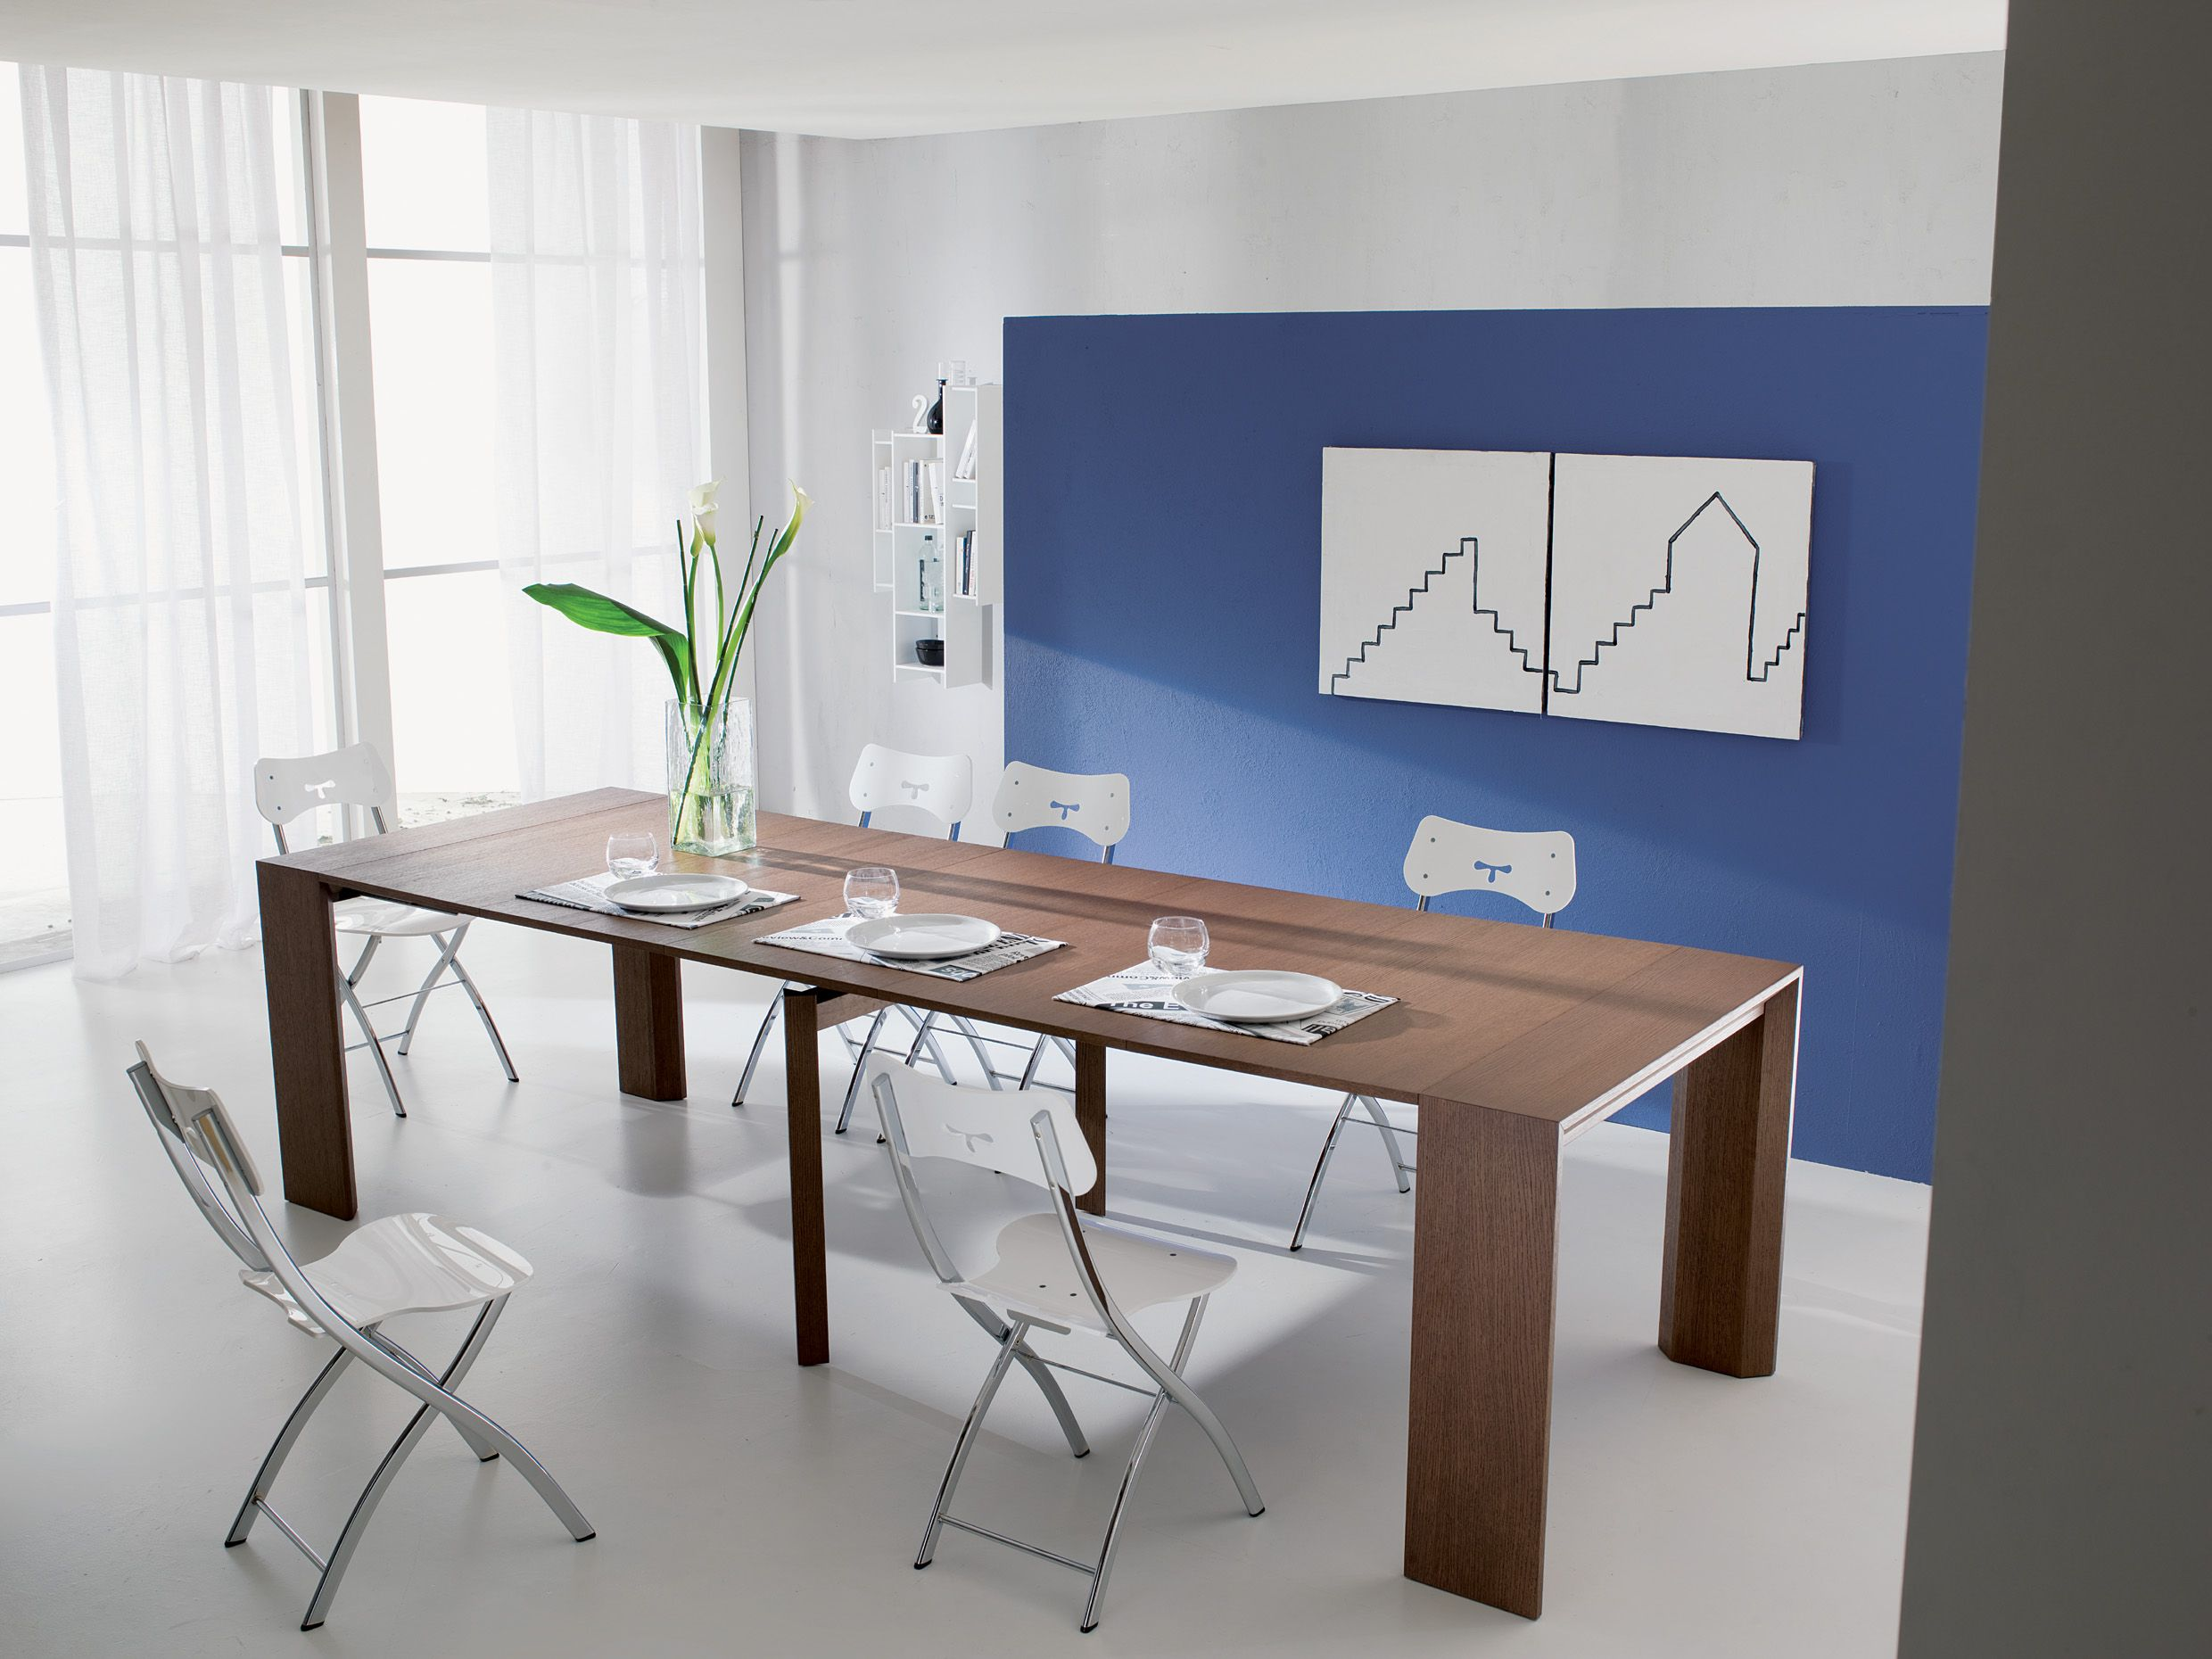 Golia By Ozzio Is A Console That Can Seat Up To 10 People When Fully Extended Resource Furniture Minimalist Dining Room Contemporary Dining Table